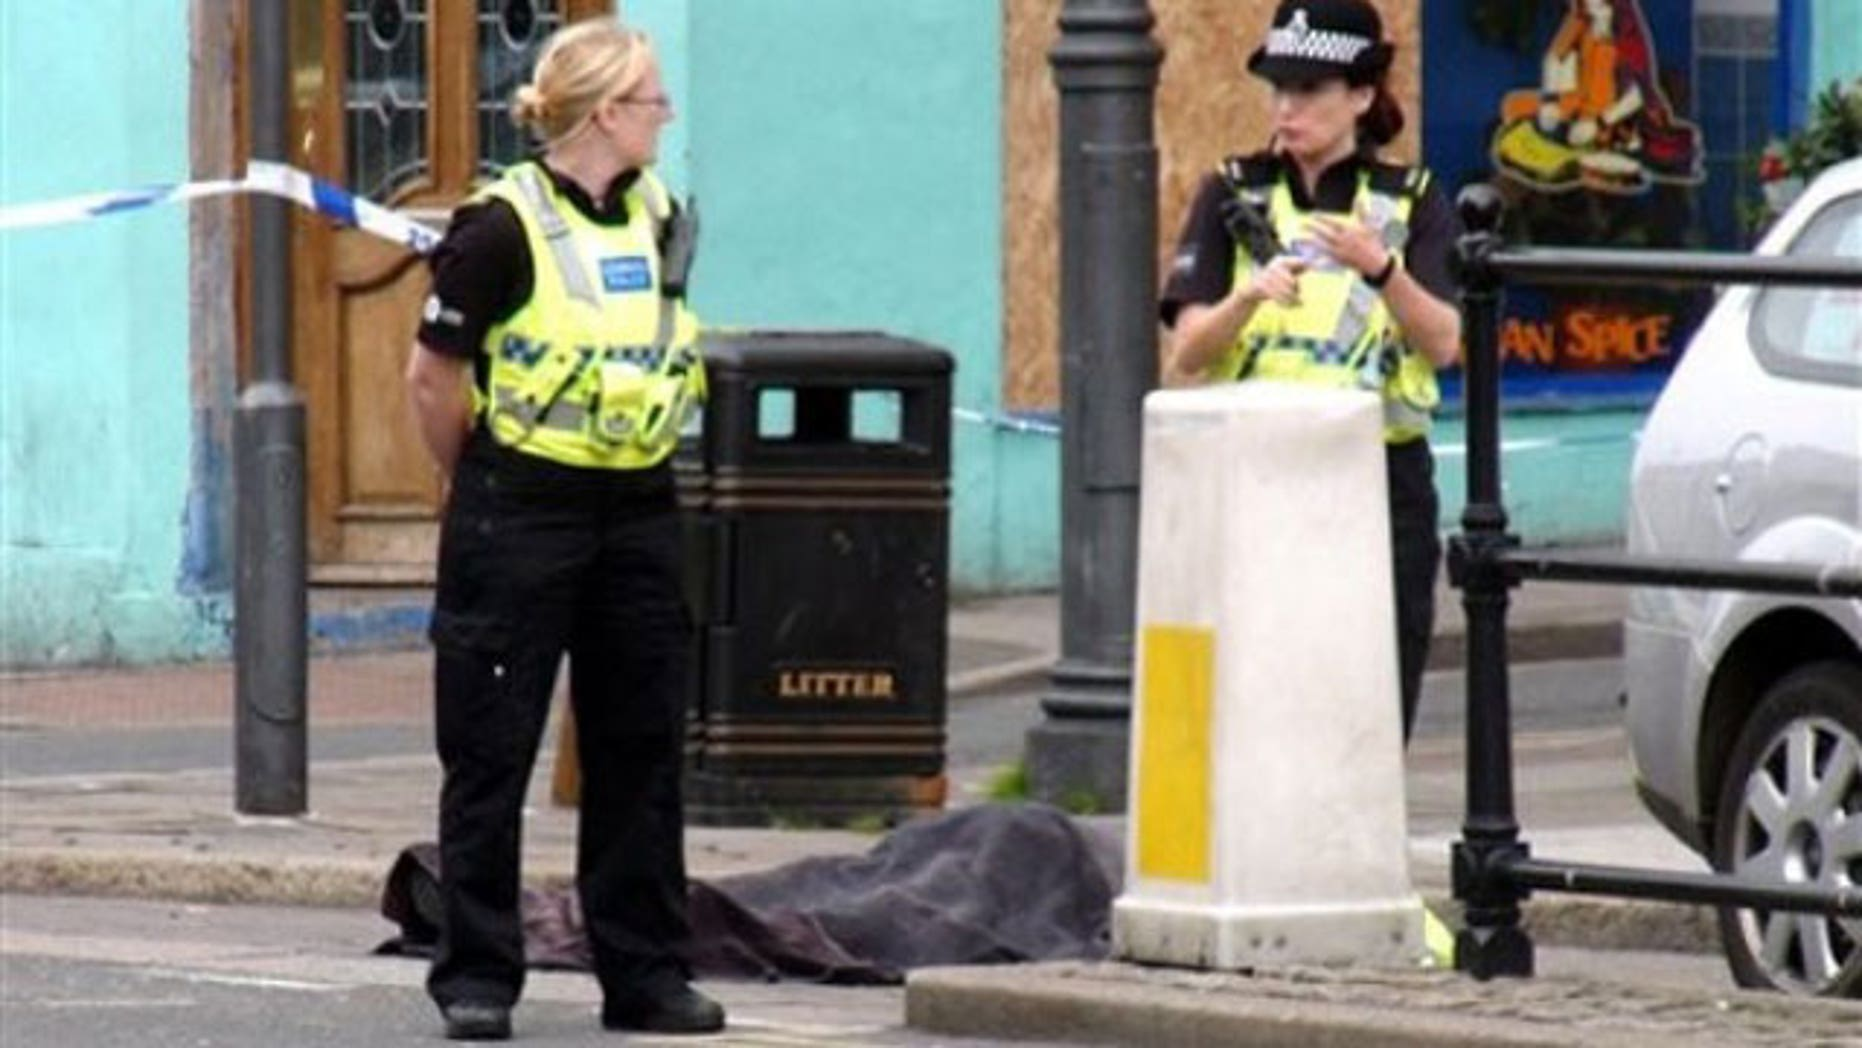 """June 2: Police stand next to a body following a shooting on Duke Street, in the town of Whitehaven in northwest England. British police were hunting down a man suspected in a shooting spree that has left more than one person dead in northwest England. The Cumbria Constabulary said there have been """"a number of fatalities"""" as well as several injuries after shots were fired in the town of Whitehaven and nearby Seascale and Egremont (AP)."""